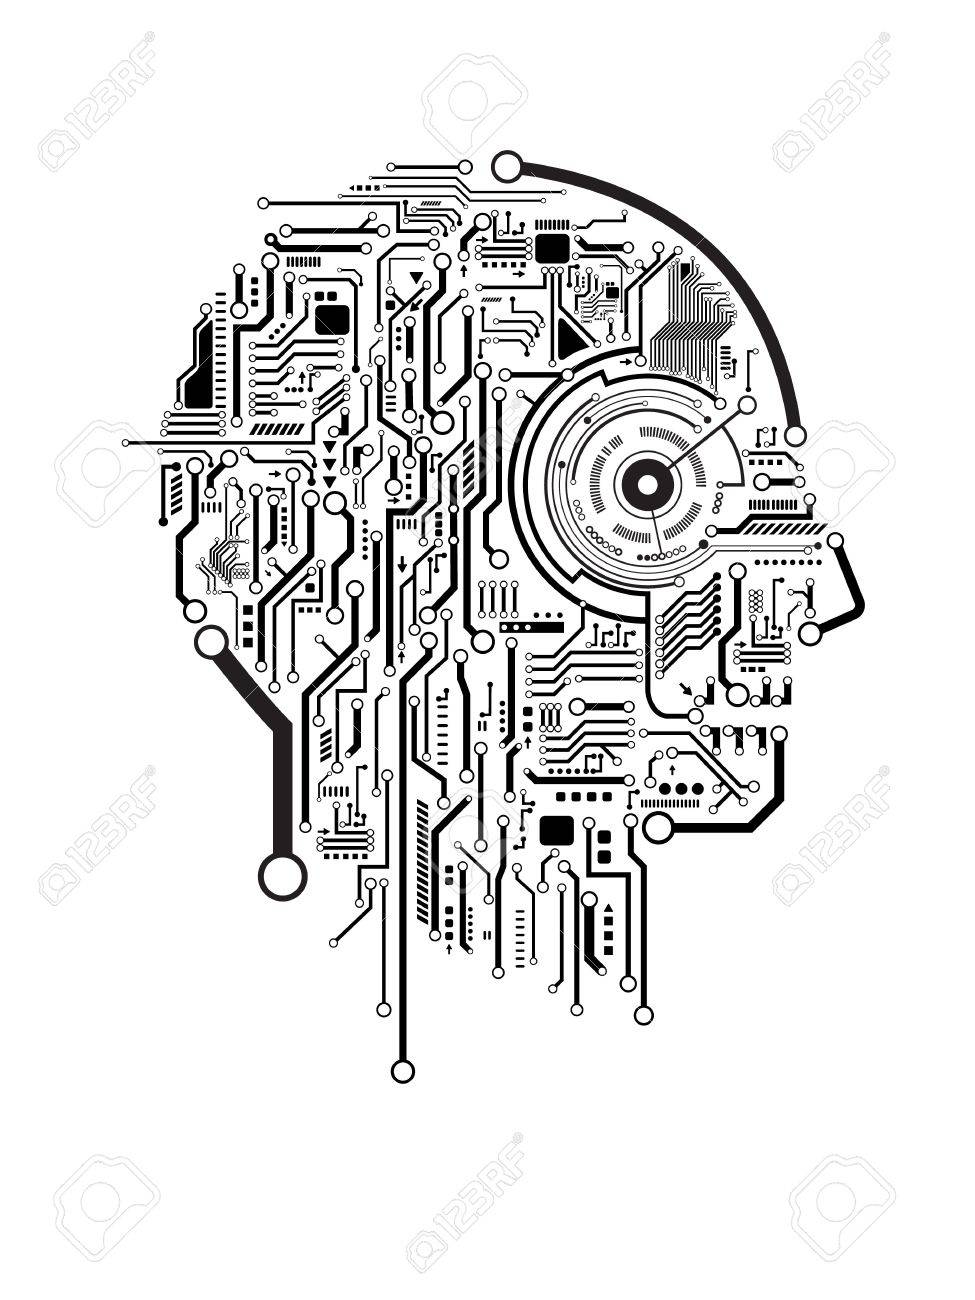 Circuit abstract human head vector background royalty free cliparts